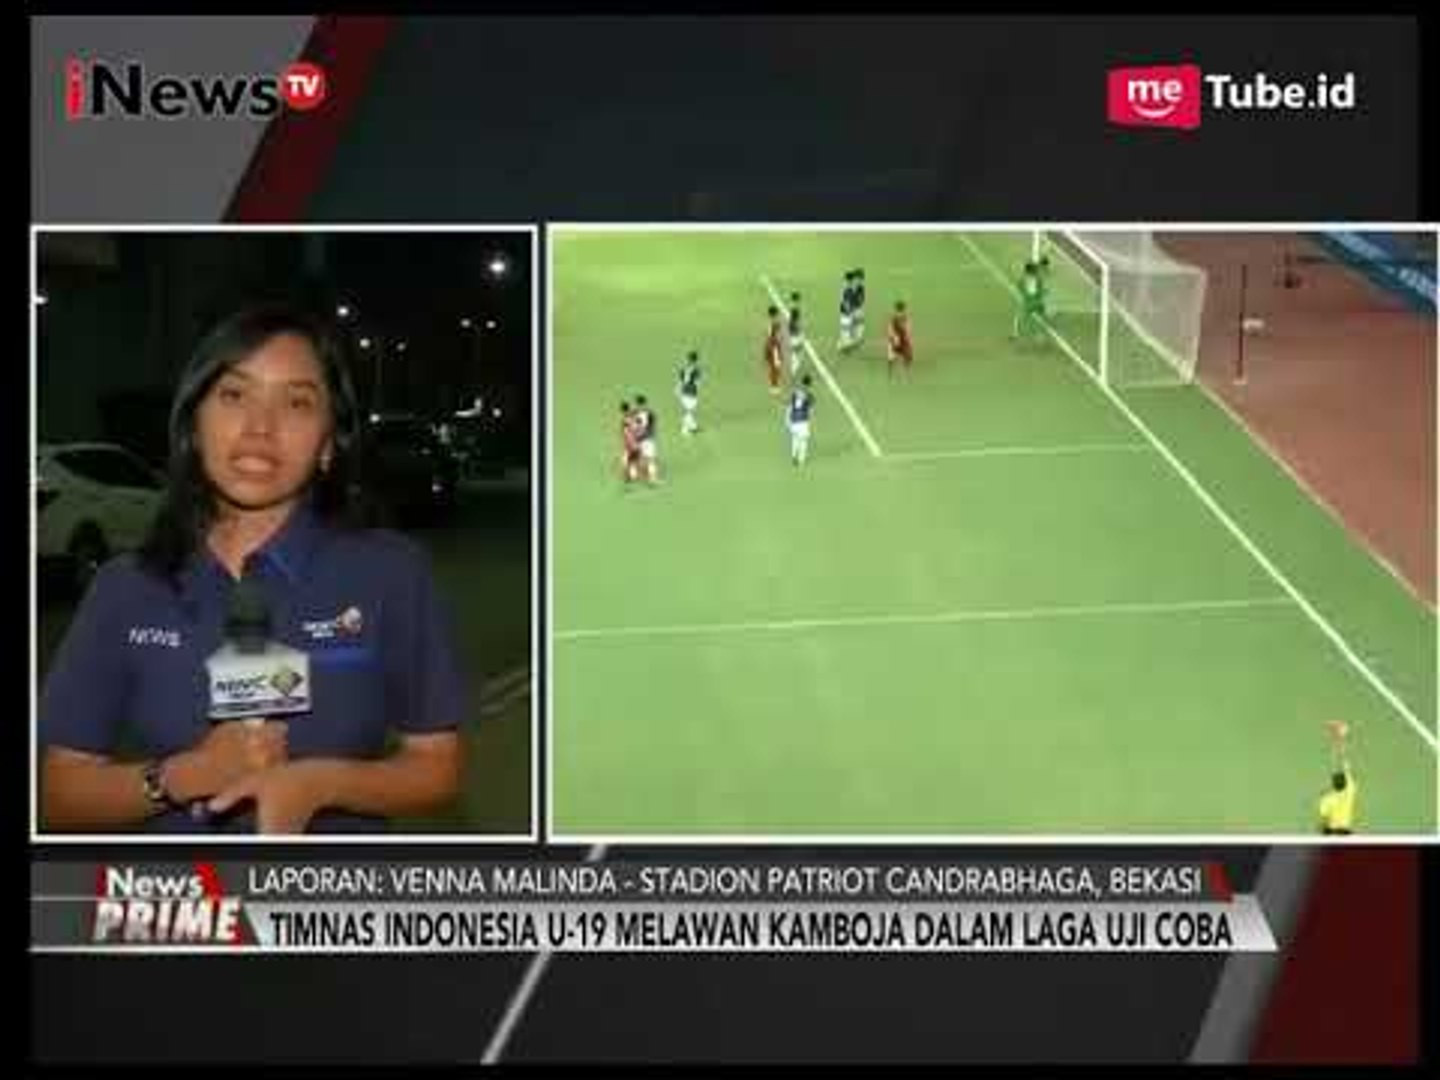 Laporan Suasana Terkini Pertandingan Sepakbola Indonesia U19 vs Kamboja U19 - iNews Prime 04/10